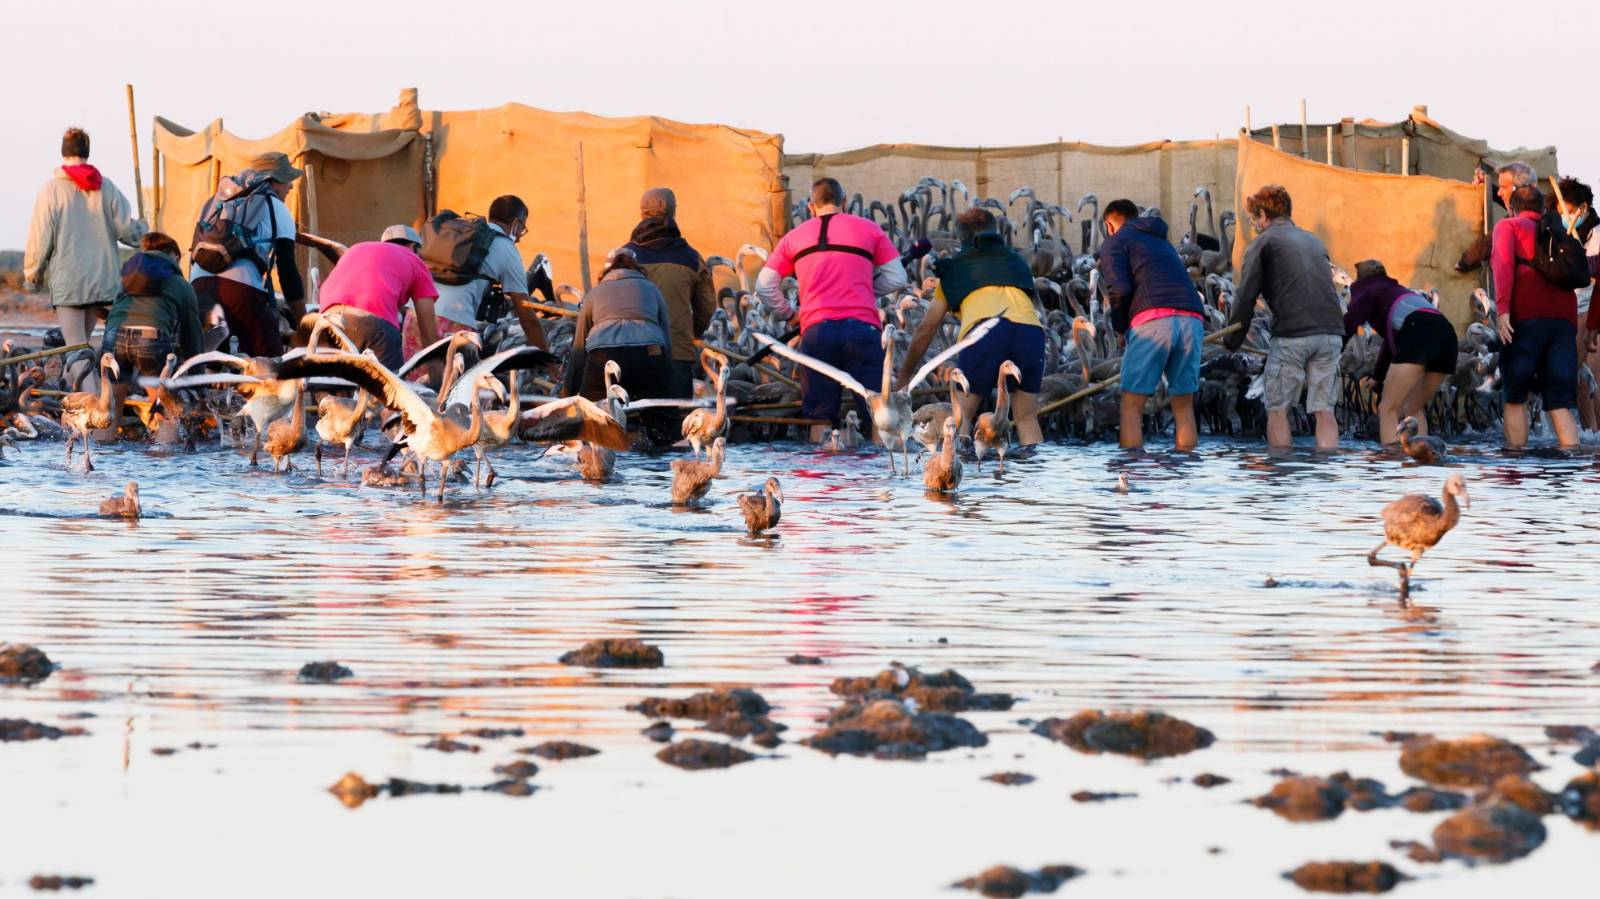 More than 50,000 pink flamingos mass in France